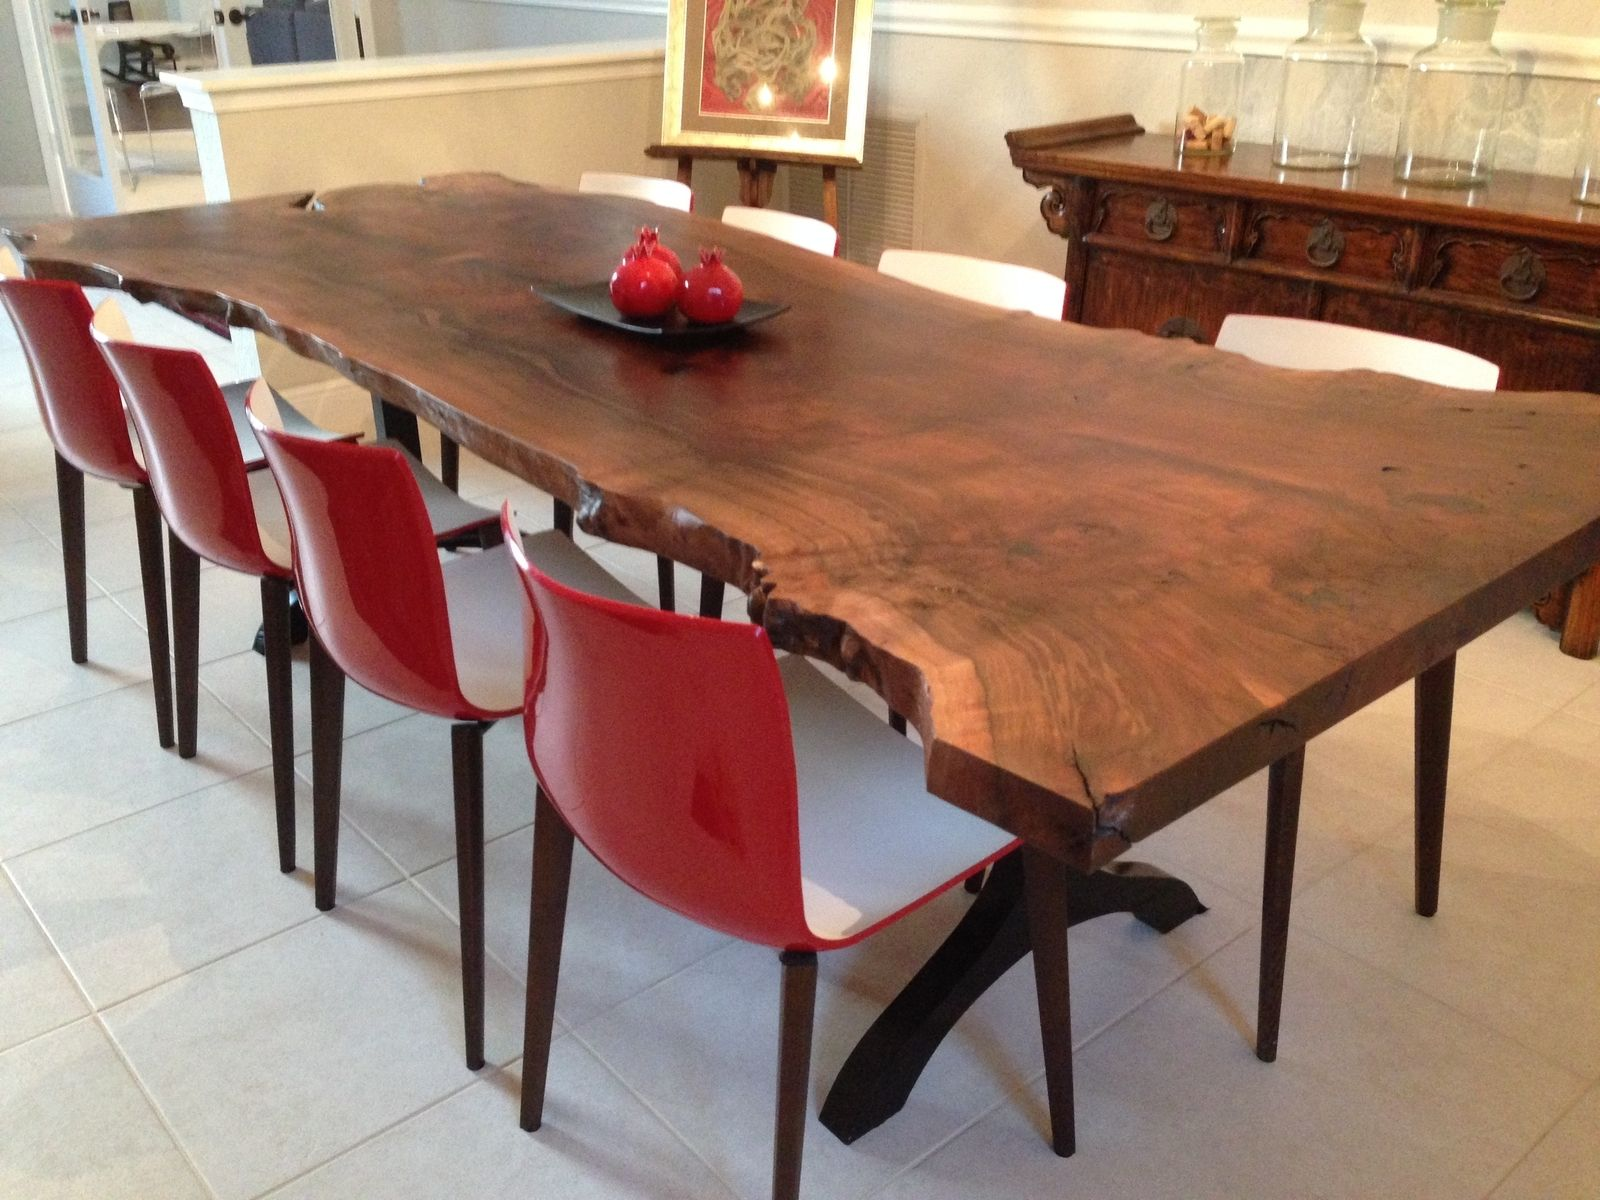 Handmade walnut live edge slab dining table by zac divine for Dining room tables handmade